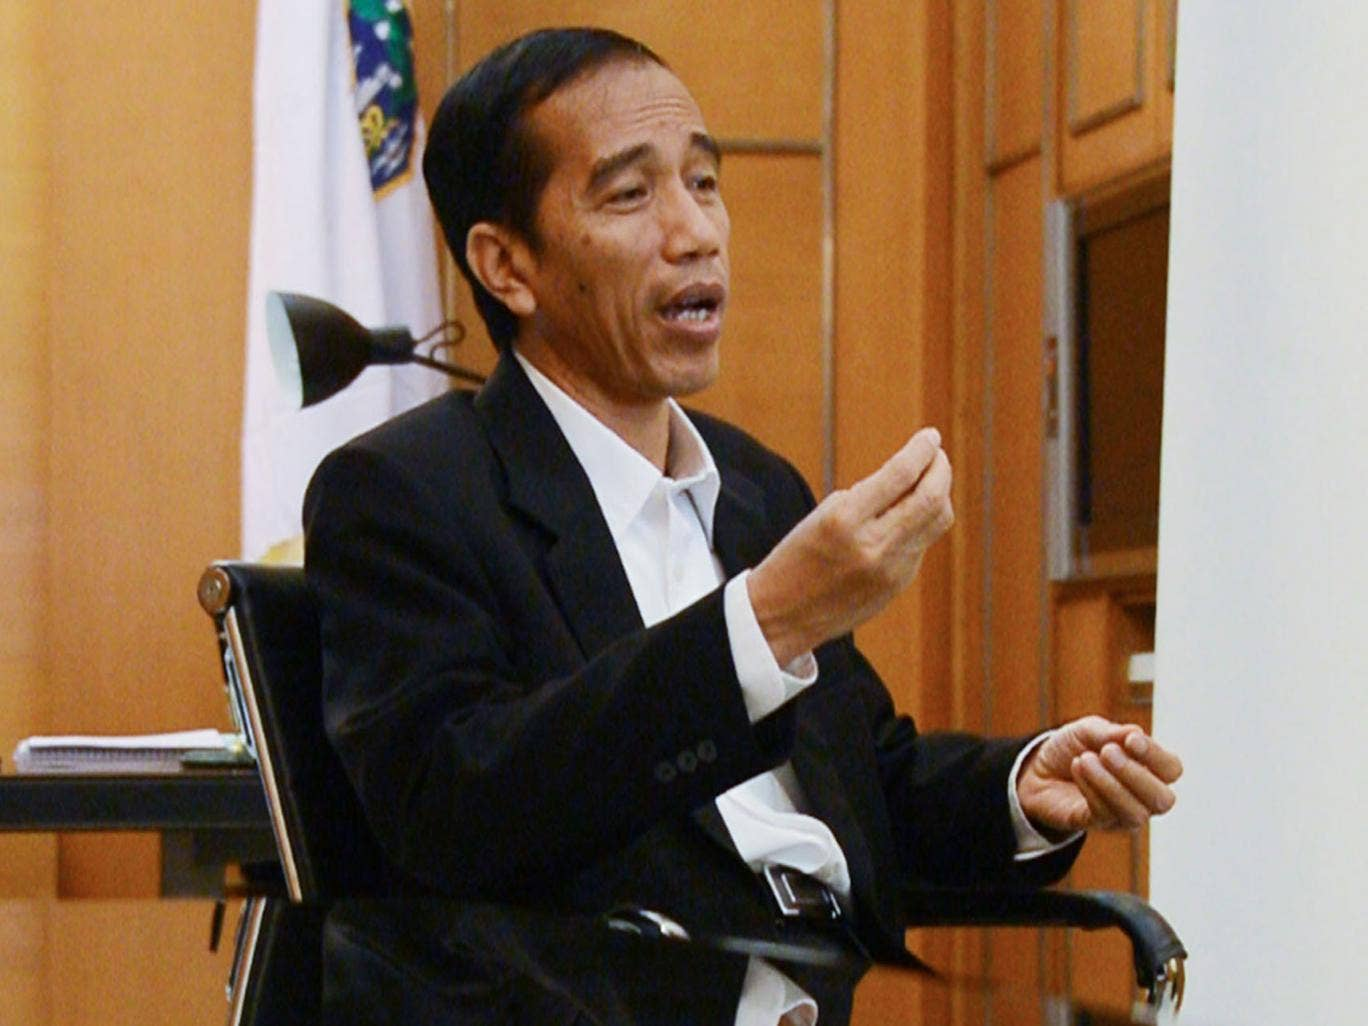 Governor Joko Widodo being interviewed in City Hall earlier this year